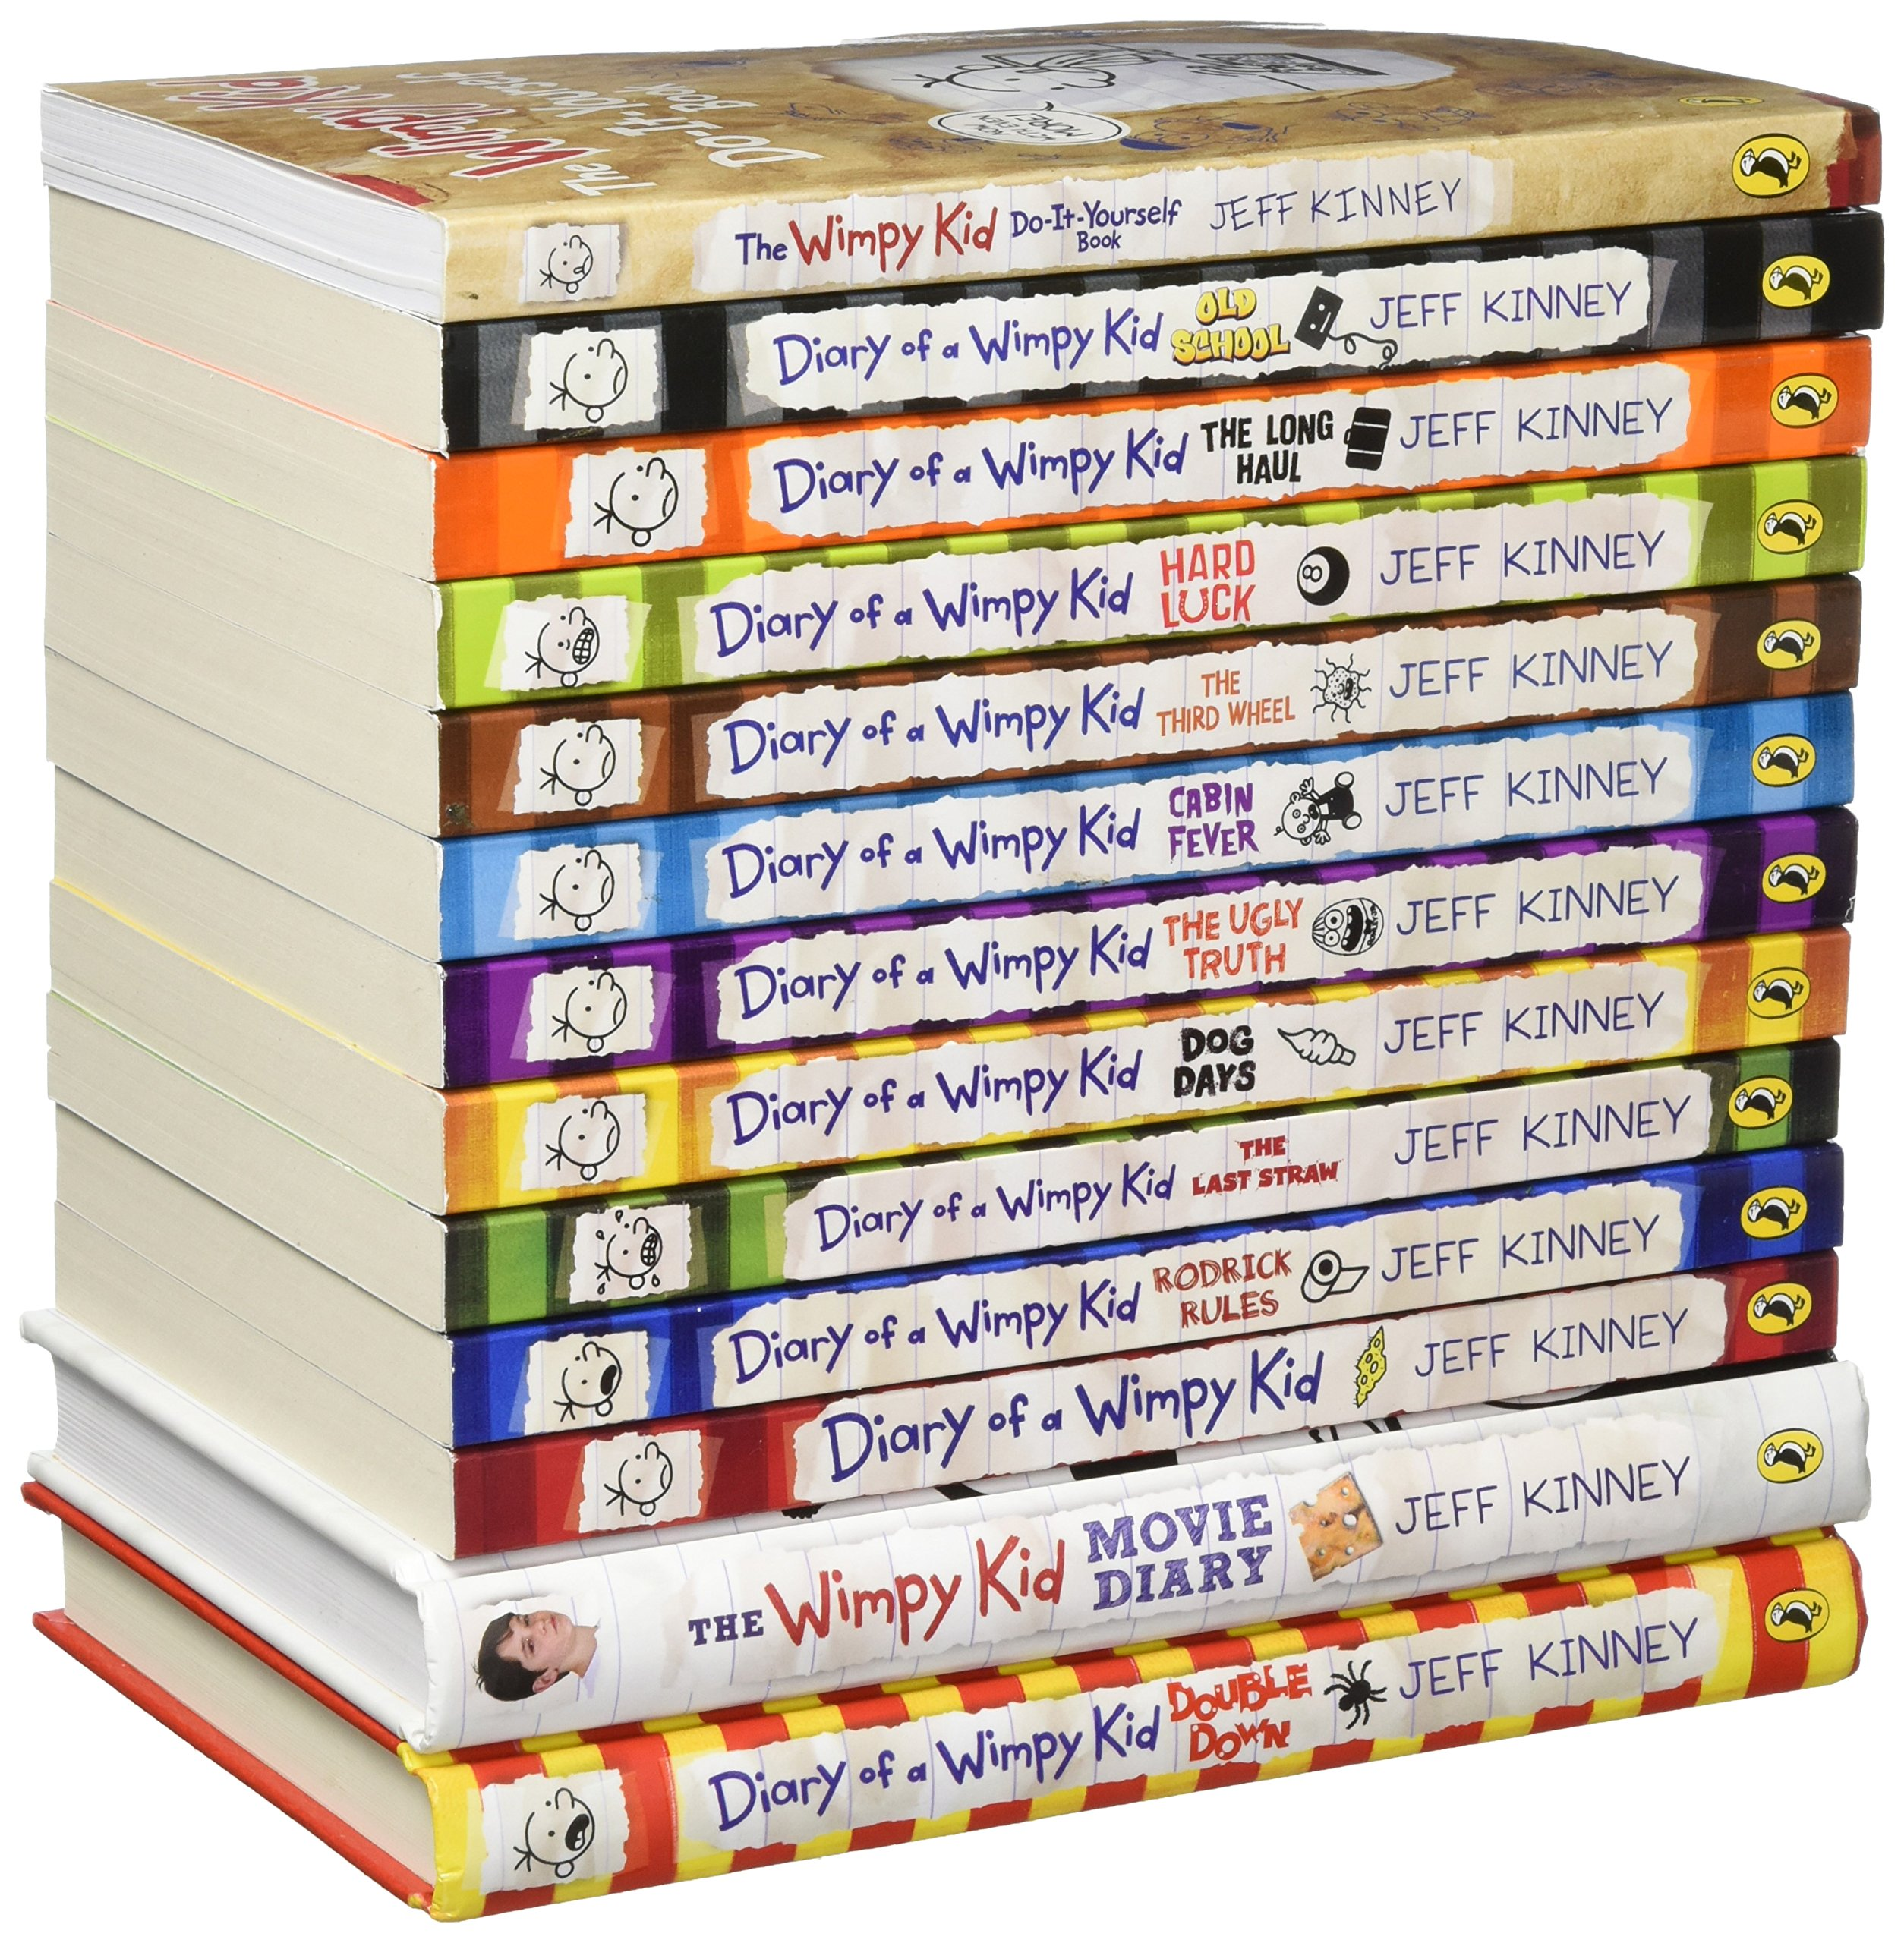 Diary of a wimpy kid collection 13 books set double down old diary of a wimpy kid collection 13 books set double down old school hard luck third wheel cabin fever the ugly truth dog days do it yourself book solutioingenieria Choice Image